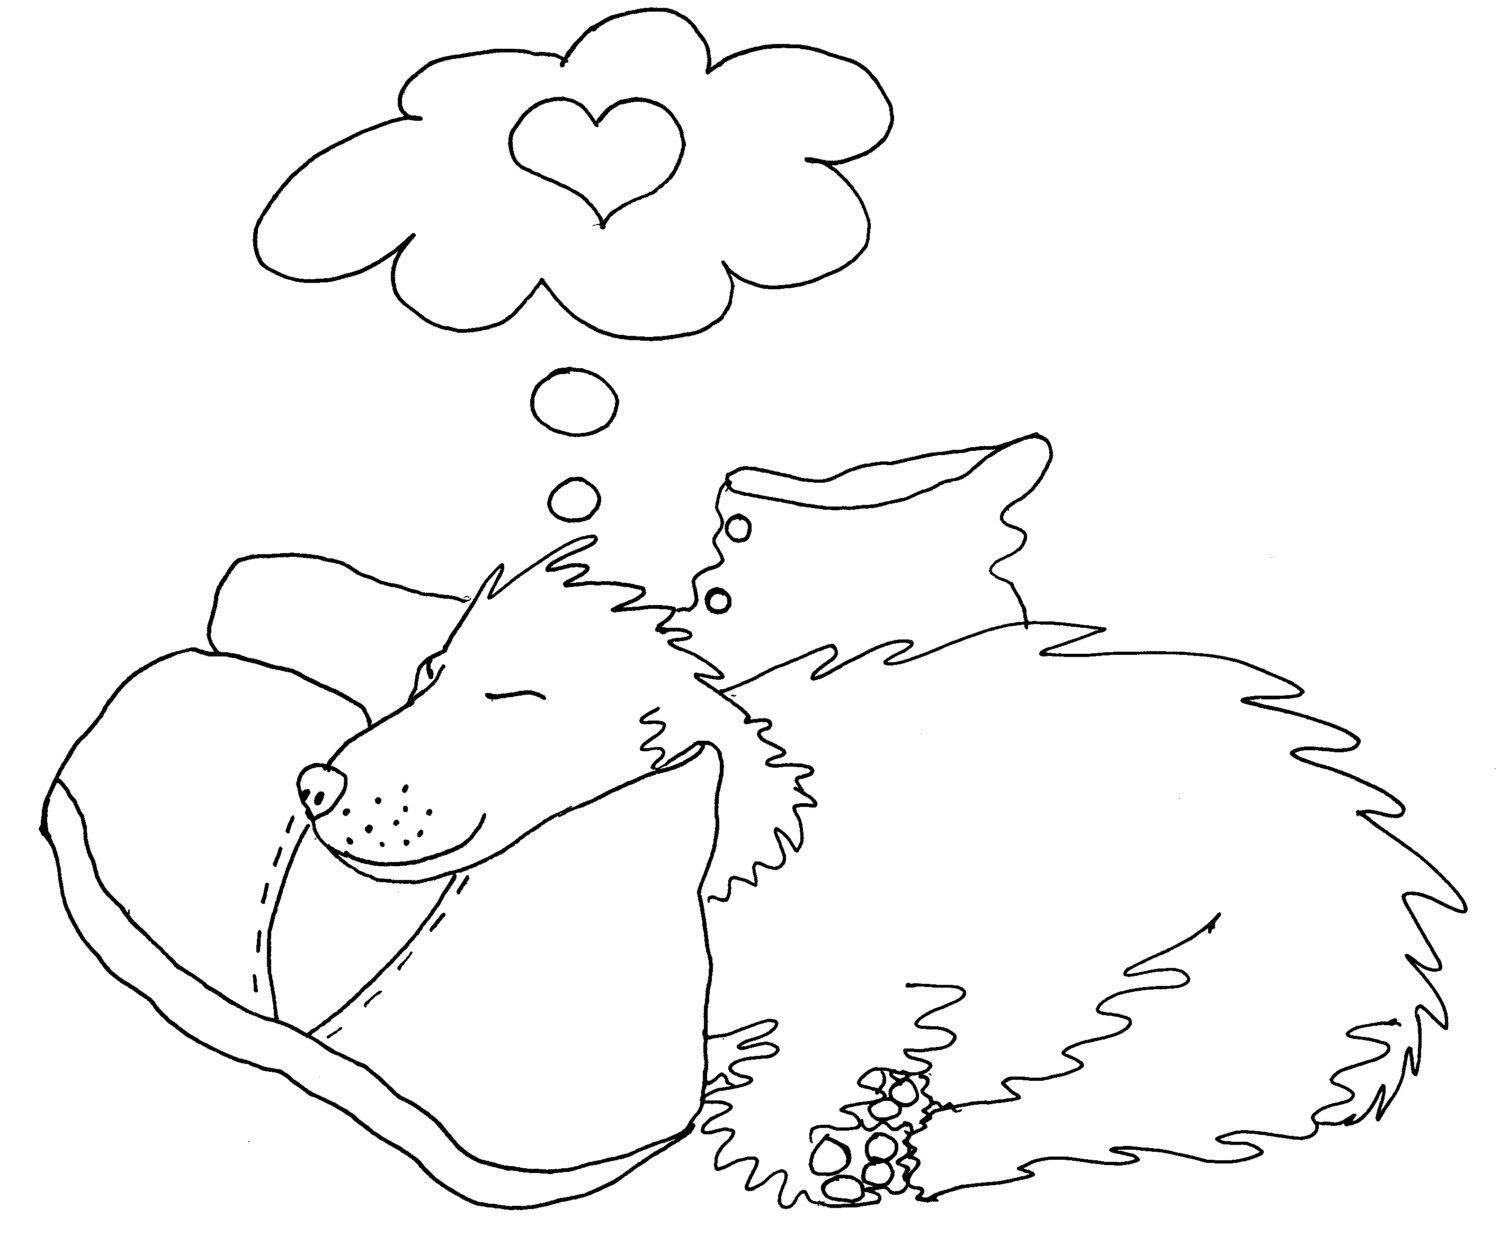 Puppy Love Cute Adult Coloring Page by Chubby Art Cartoons DIY